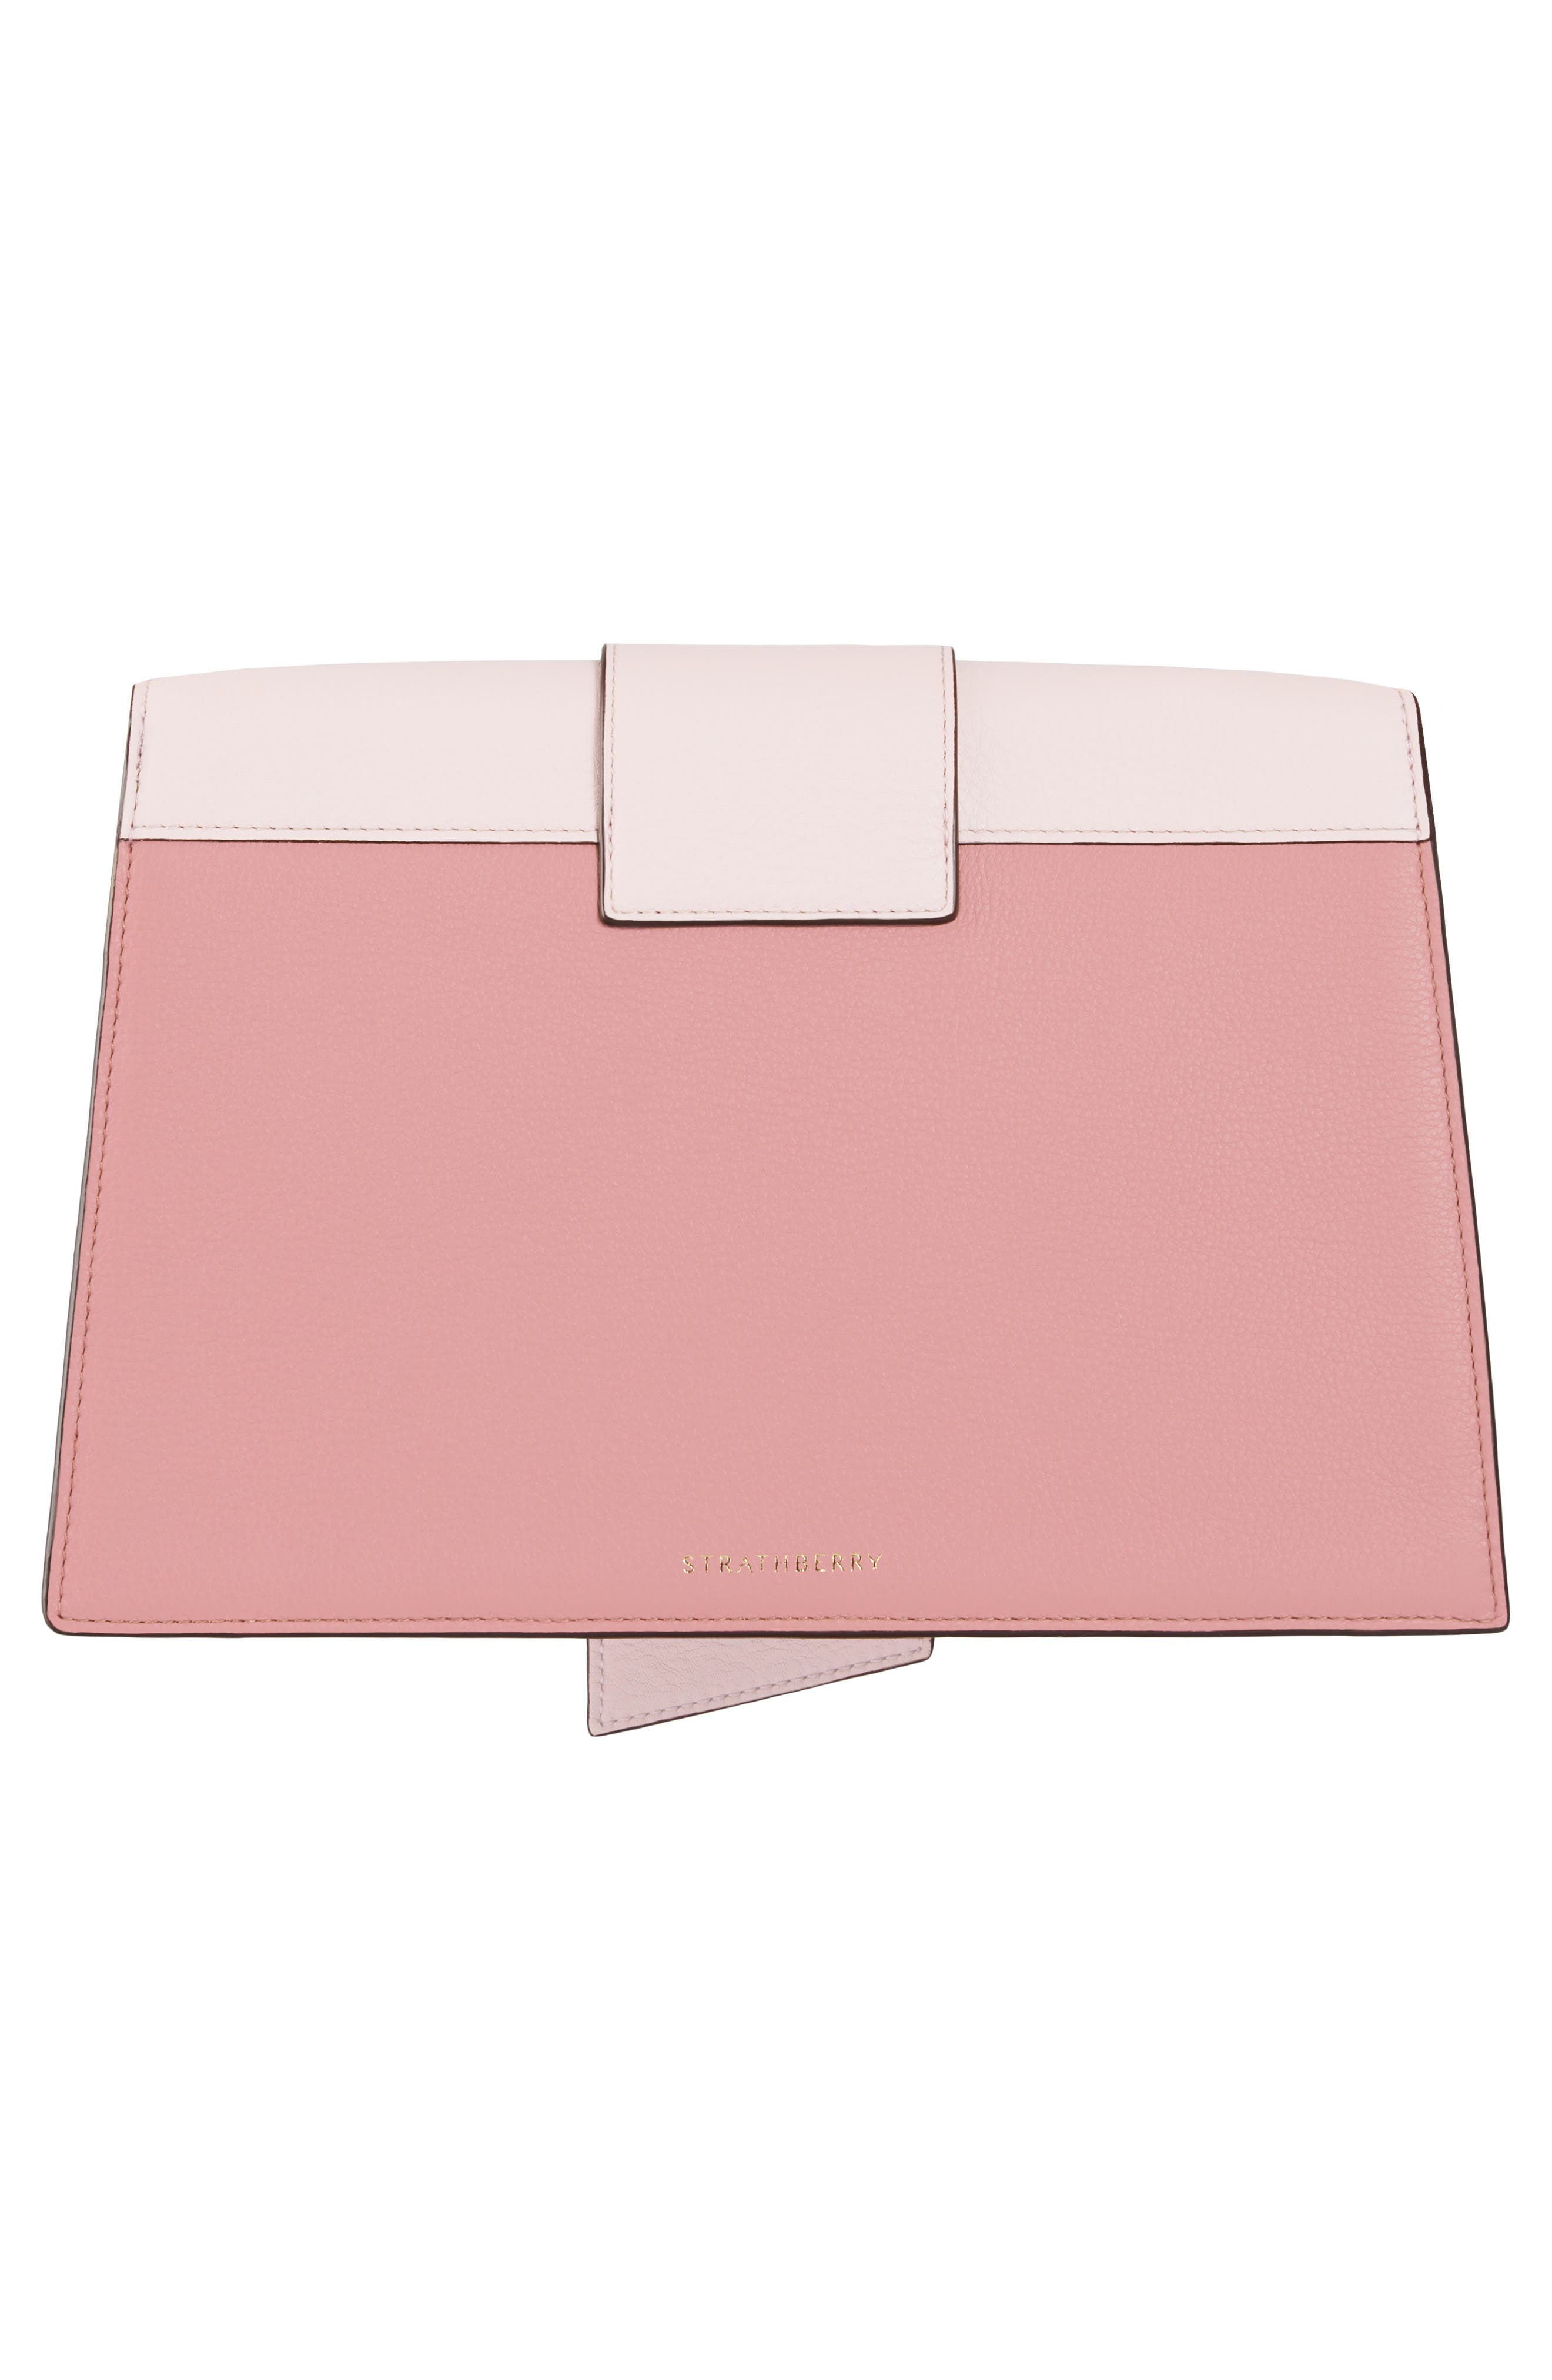 STRATHBERRY, Mini Crescent Leather Clutch, Alternate thumbnail 2, color, BABY PINK/ ROSE/ BURGUNDY